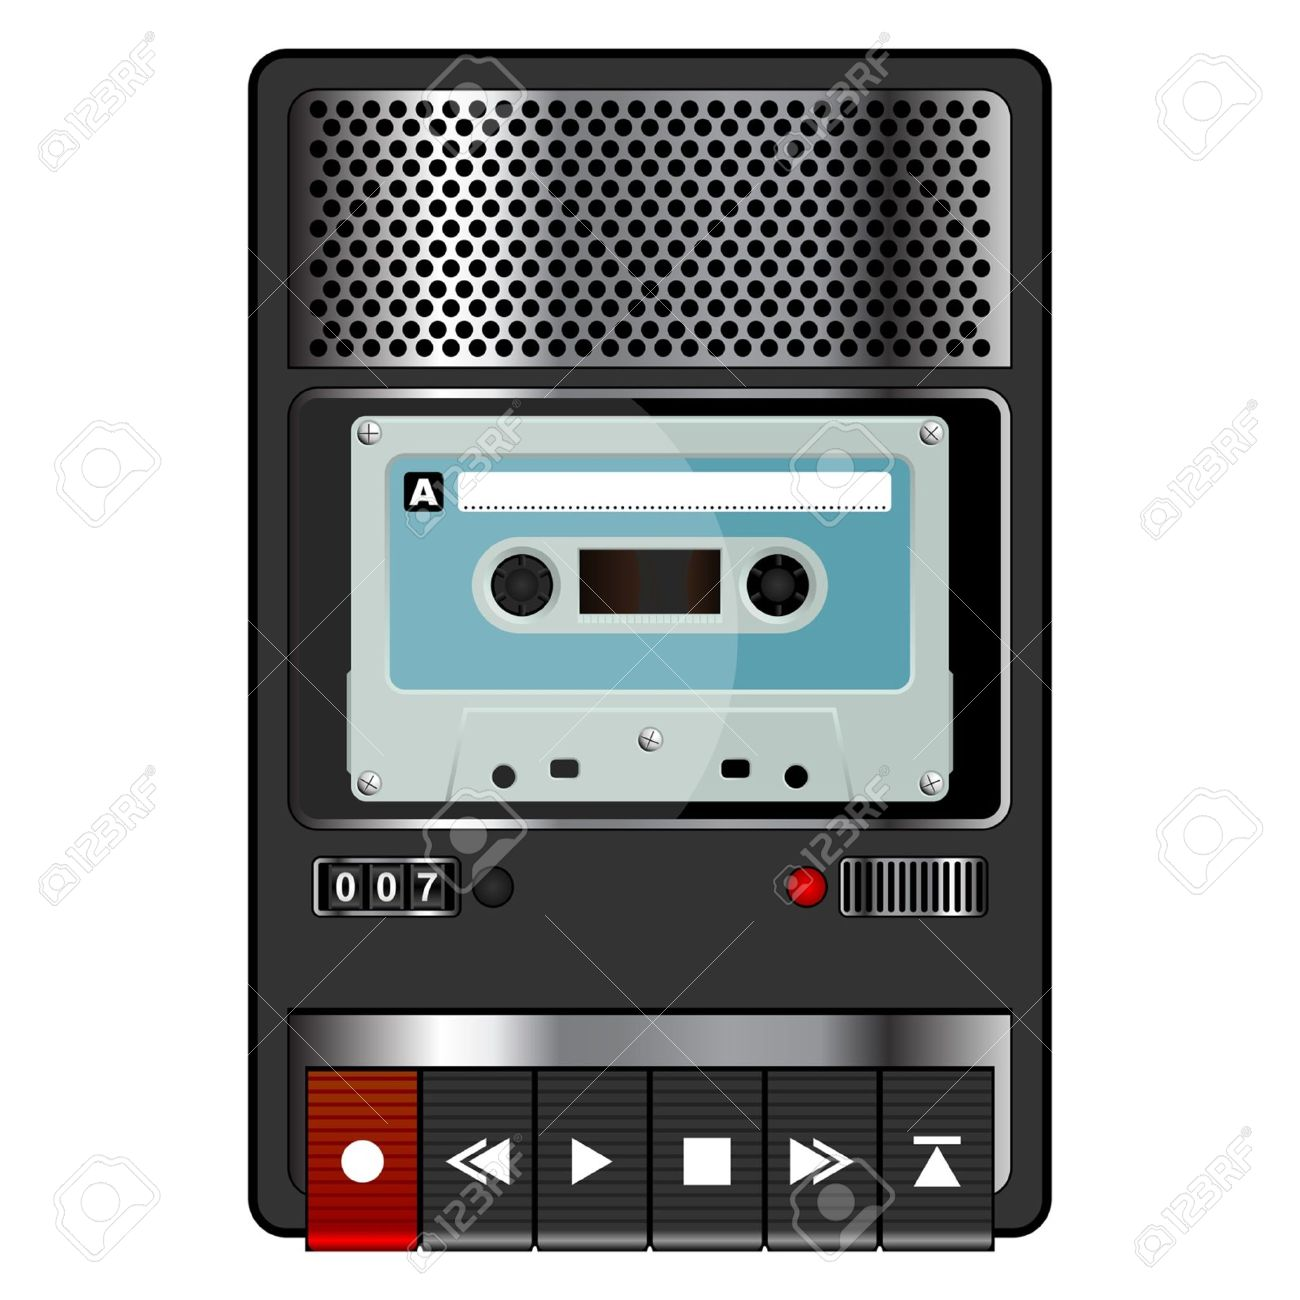 Tape recorder clipart.